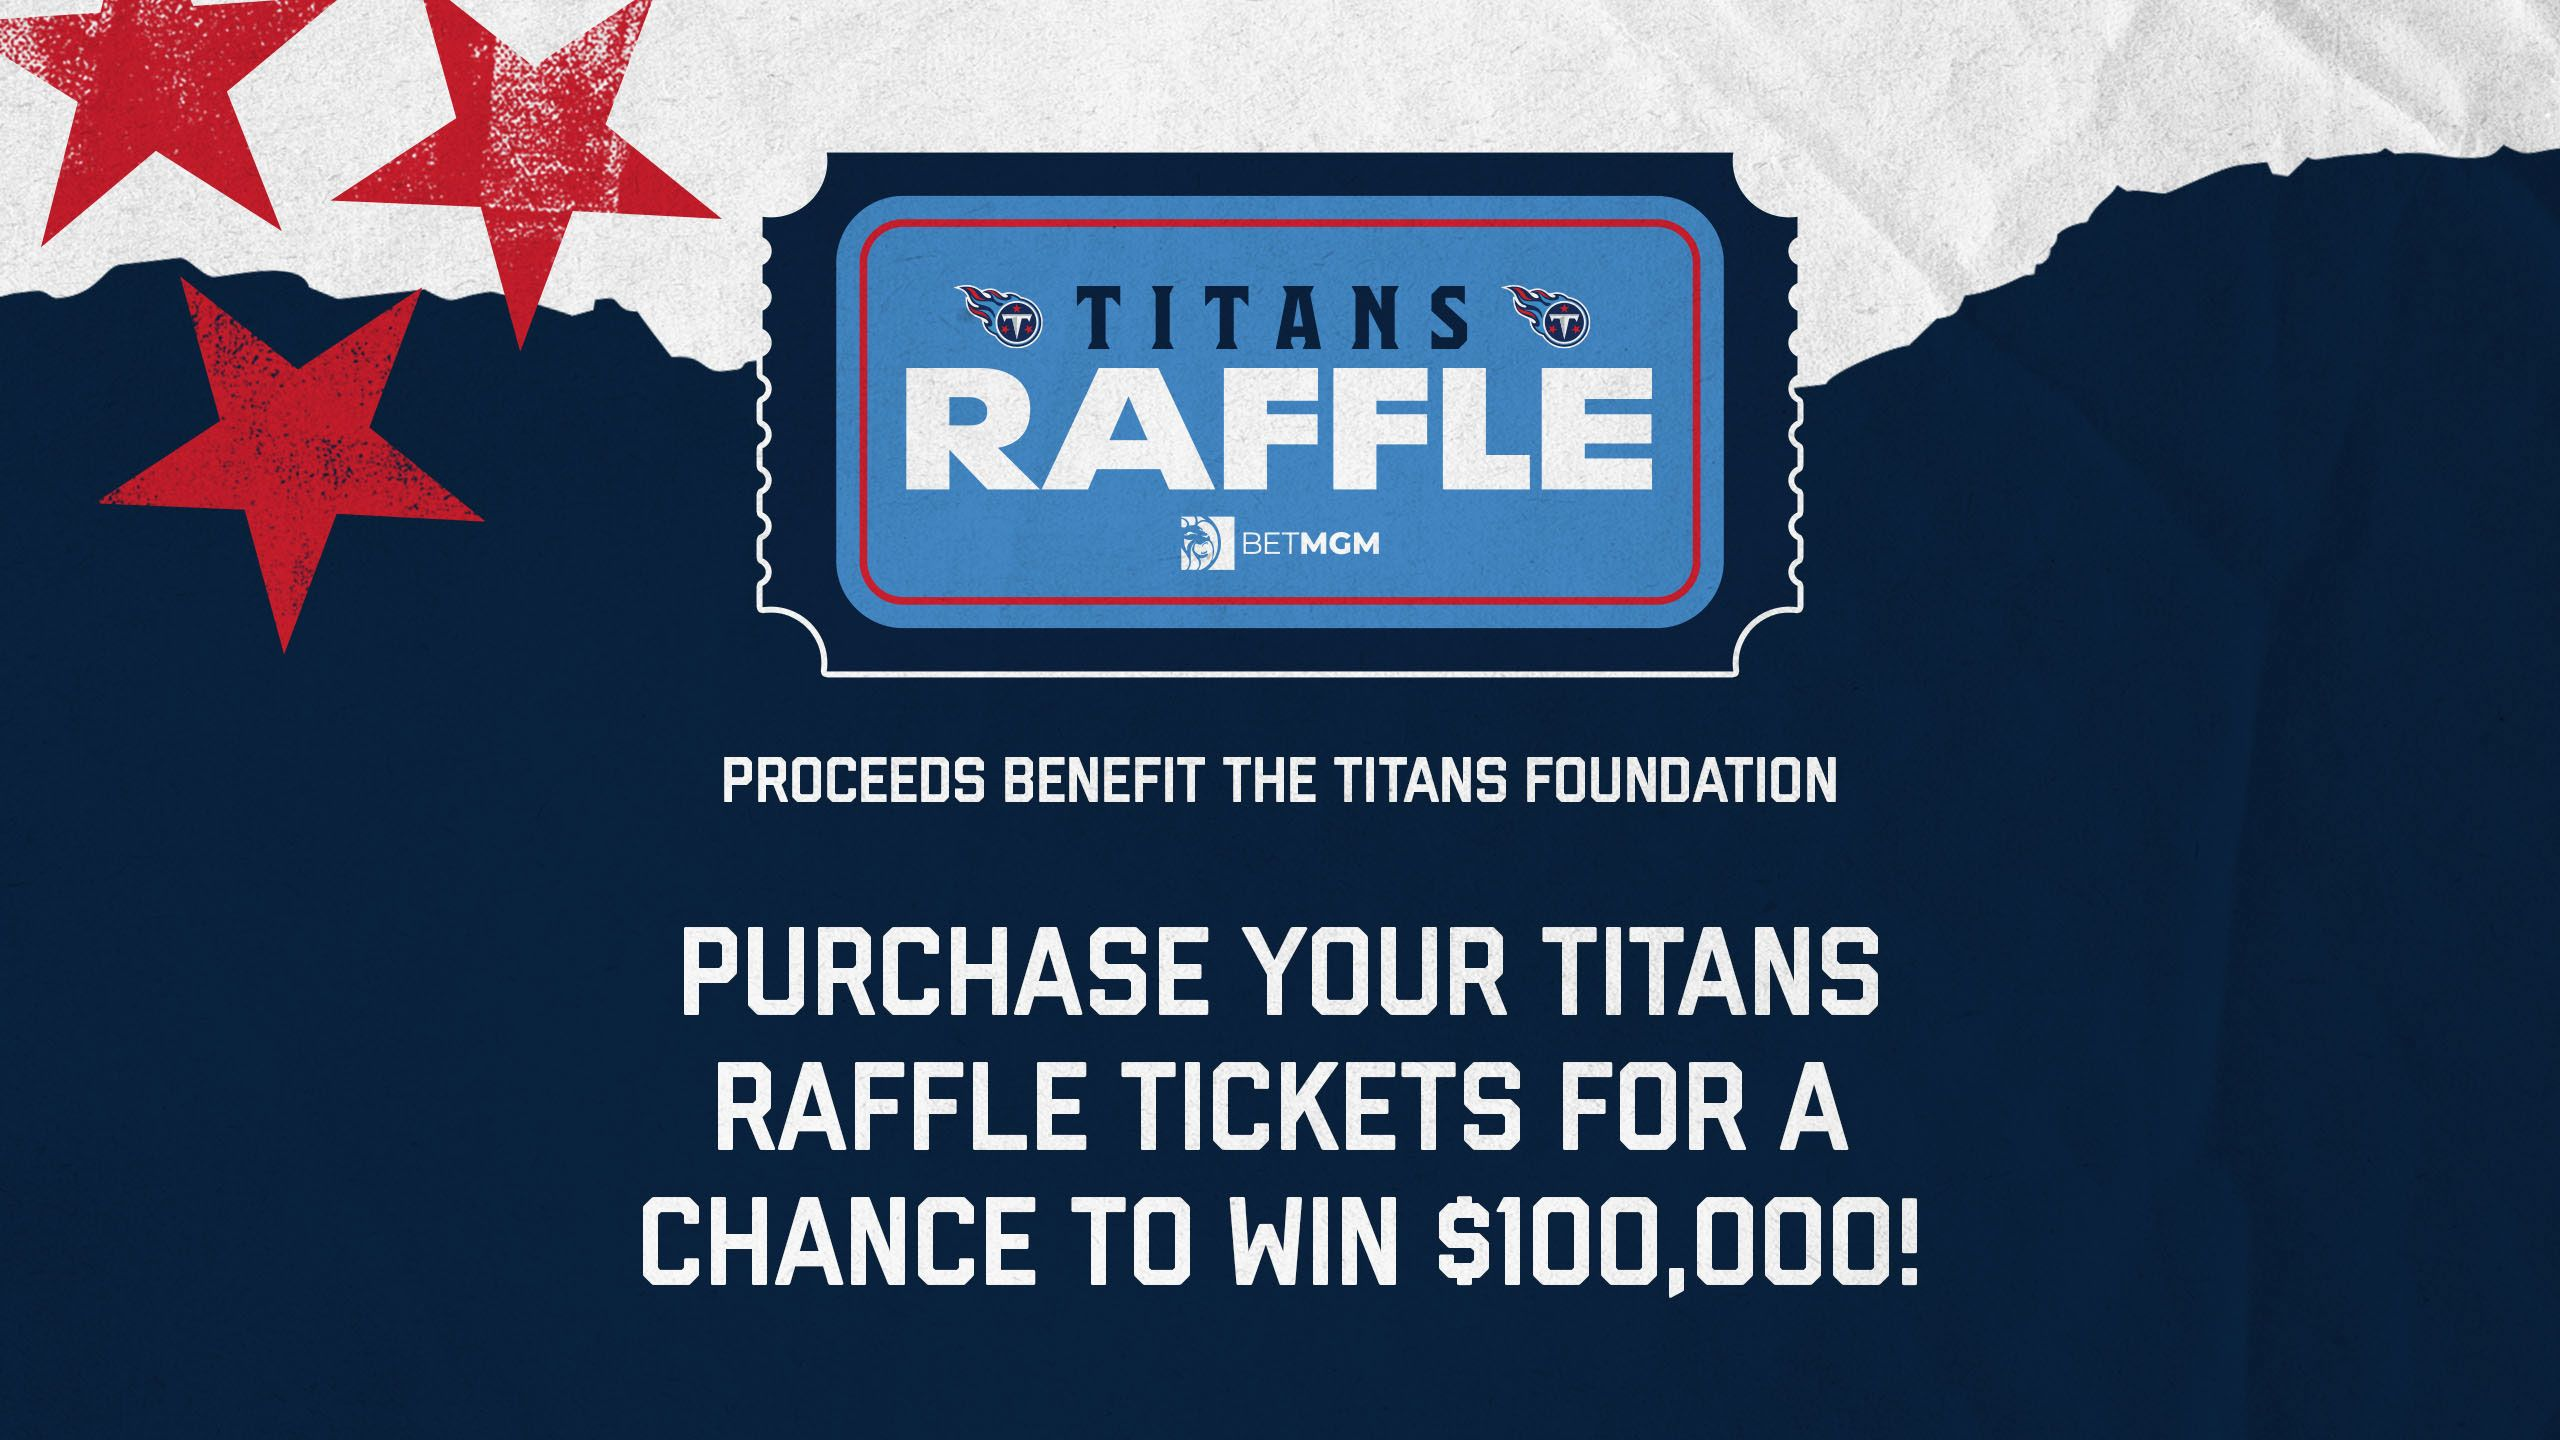 Titans Raffle, presented by Bet MGM